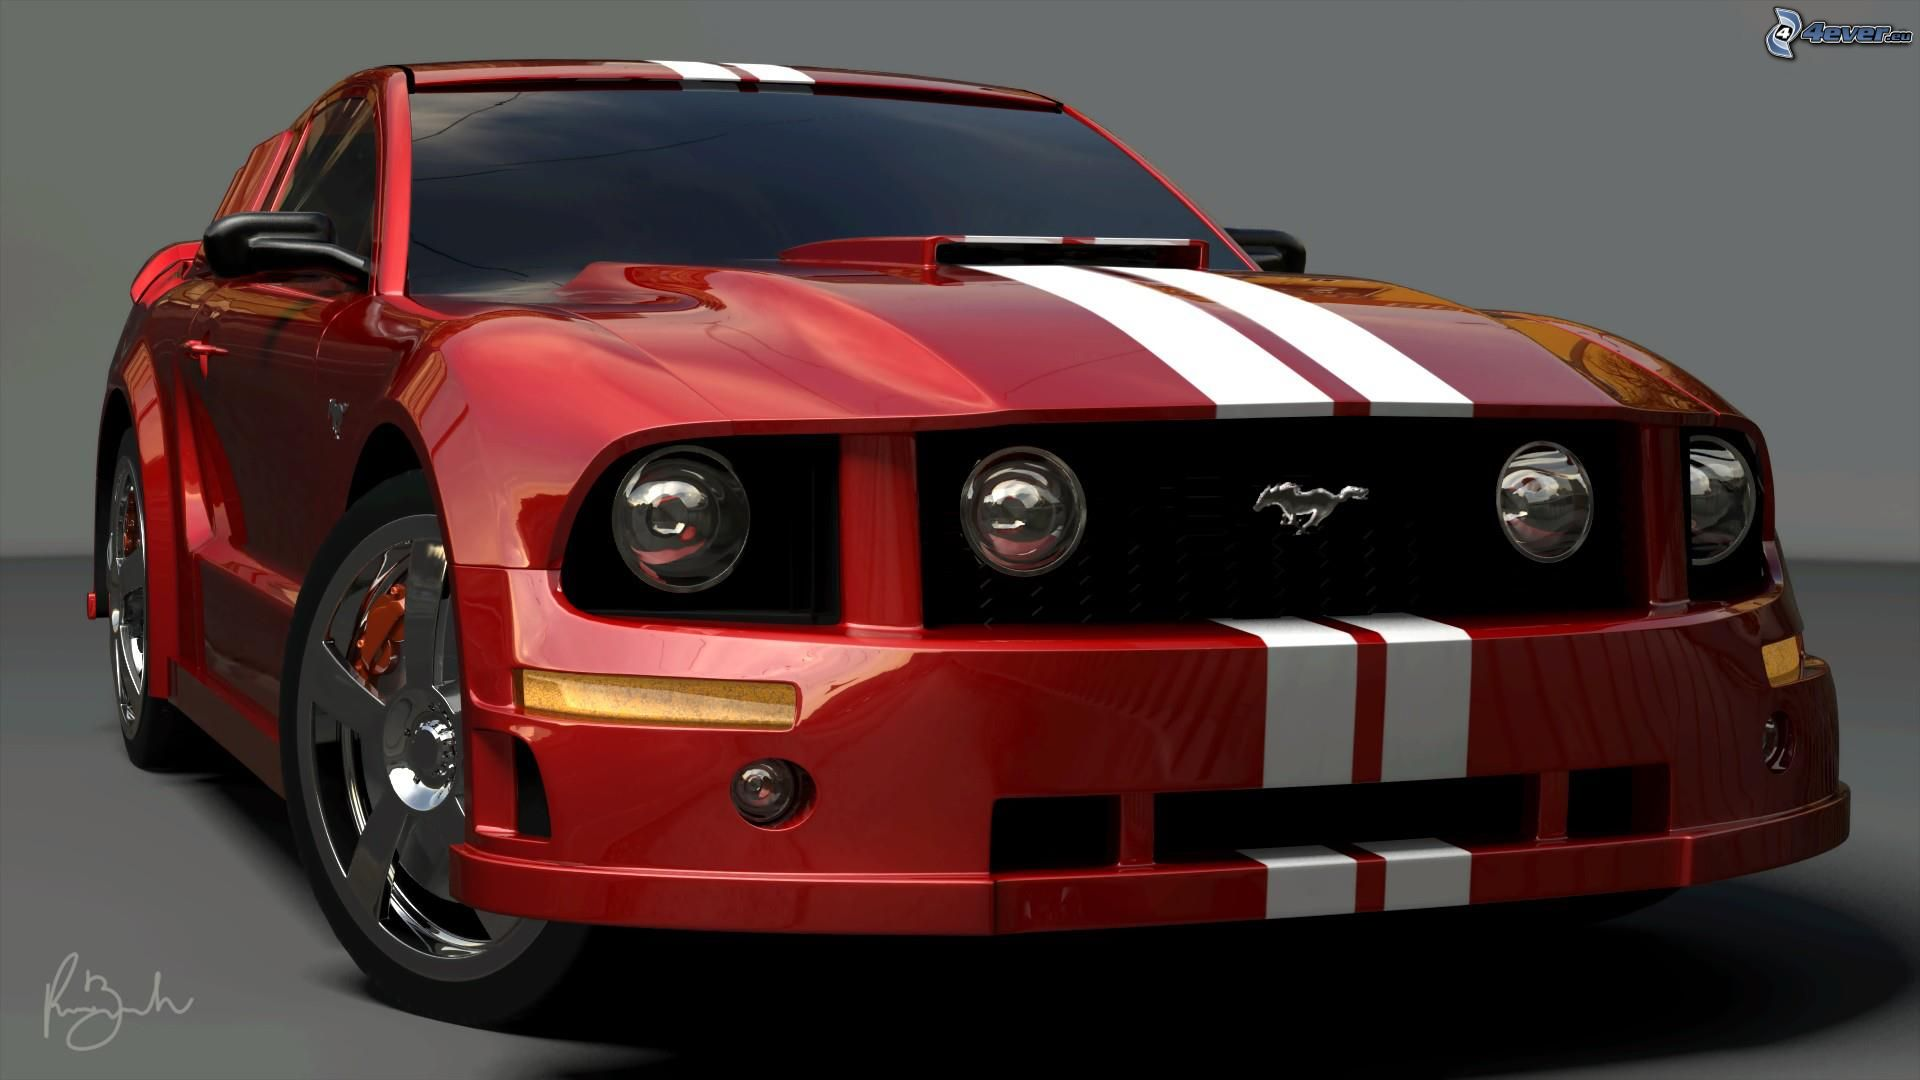 Favori Ford Mustang ZR73